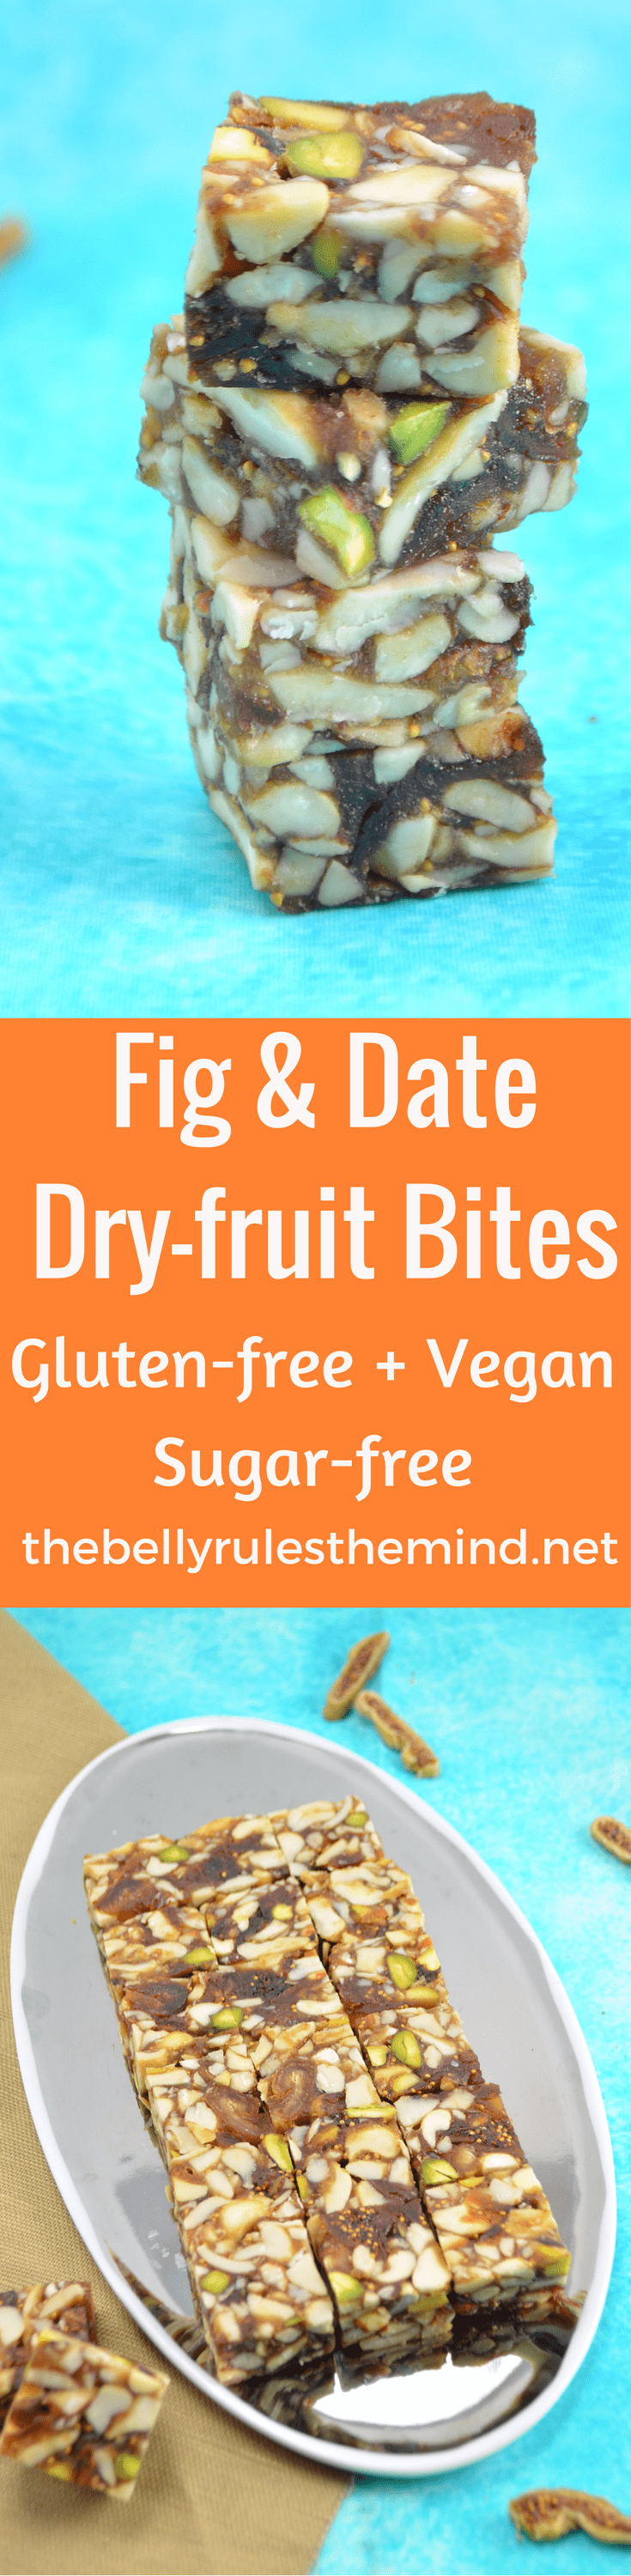 Fig & Date Dry-Fruit Bites